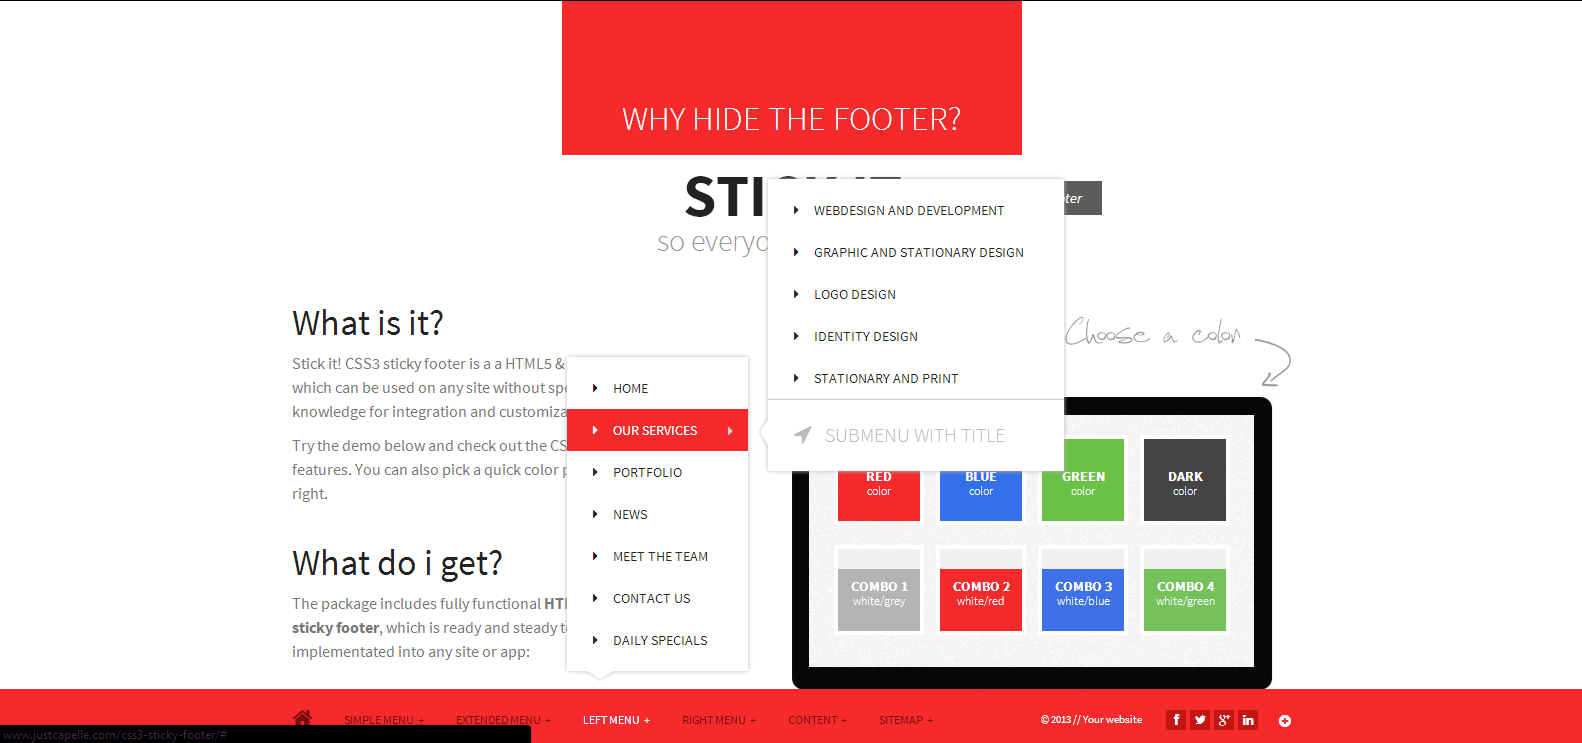 Stick it. HTML5 & CSS3 Sticky Footer